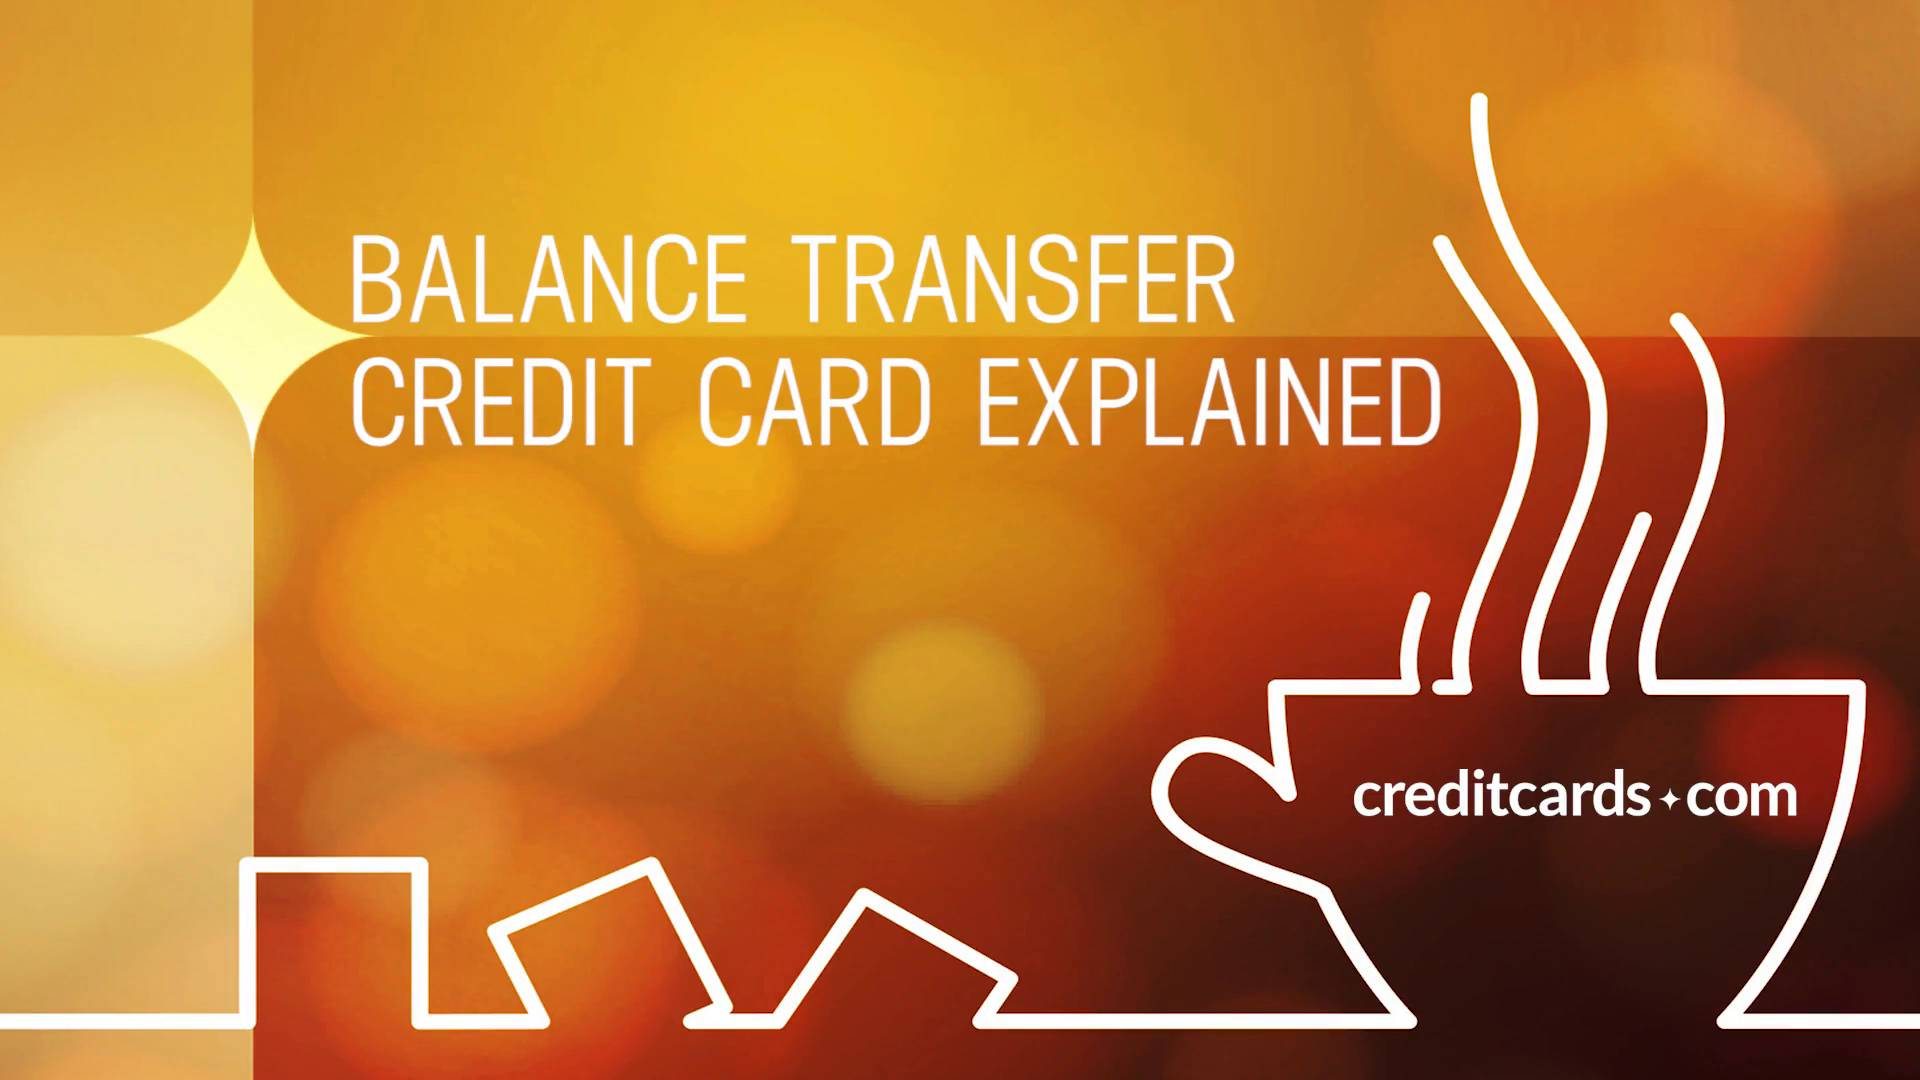 Balance transfer: the best way to pay down card debt? - CreditCards.com